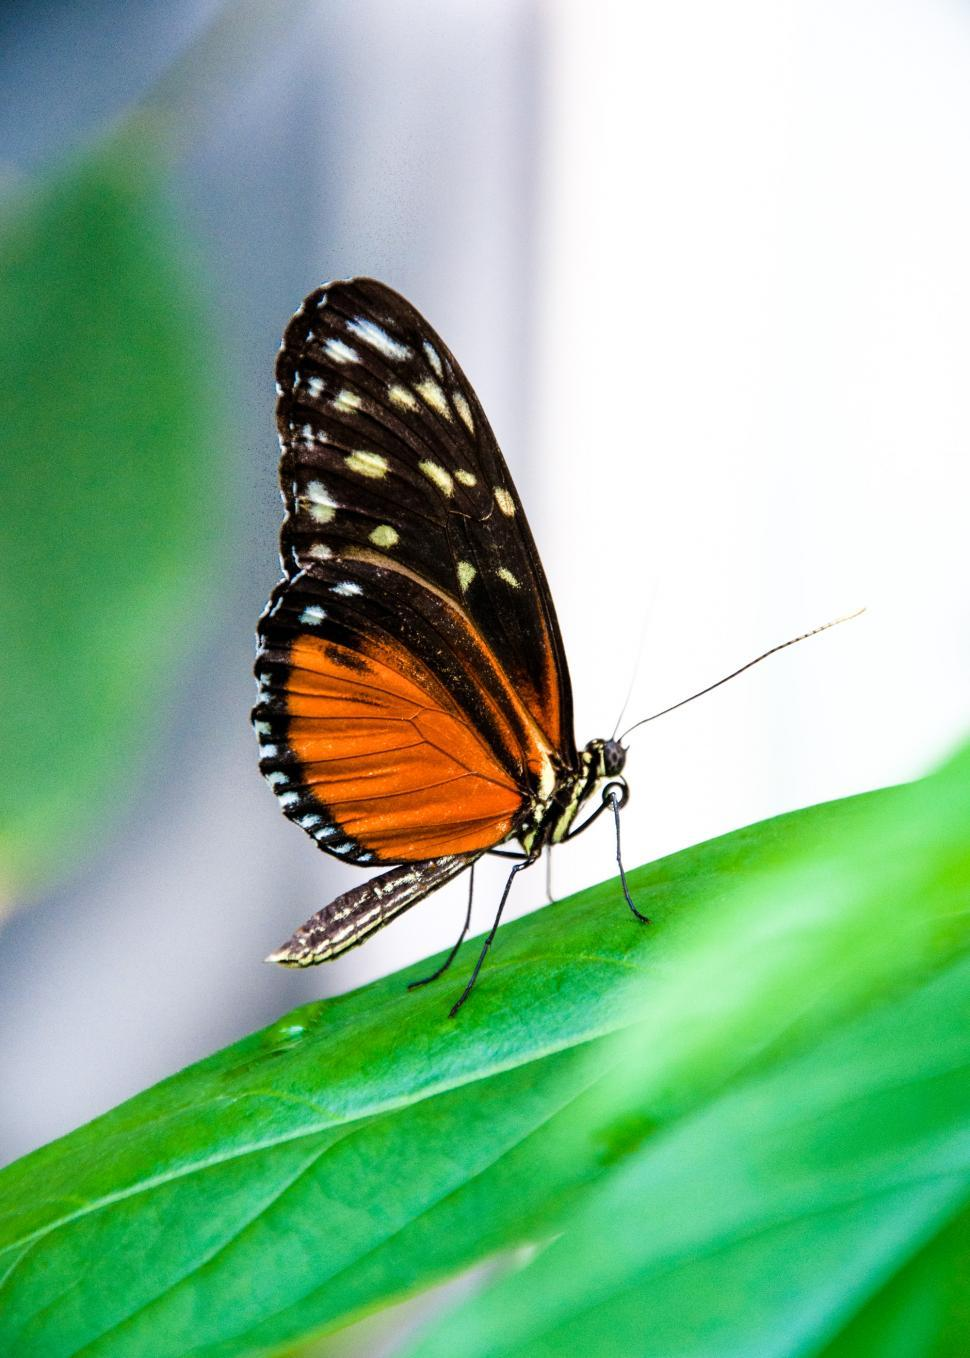 Download Free Stock Photo of Butterfly in nature